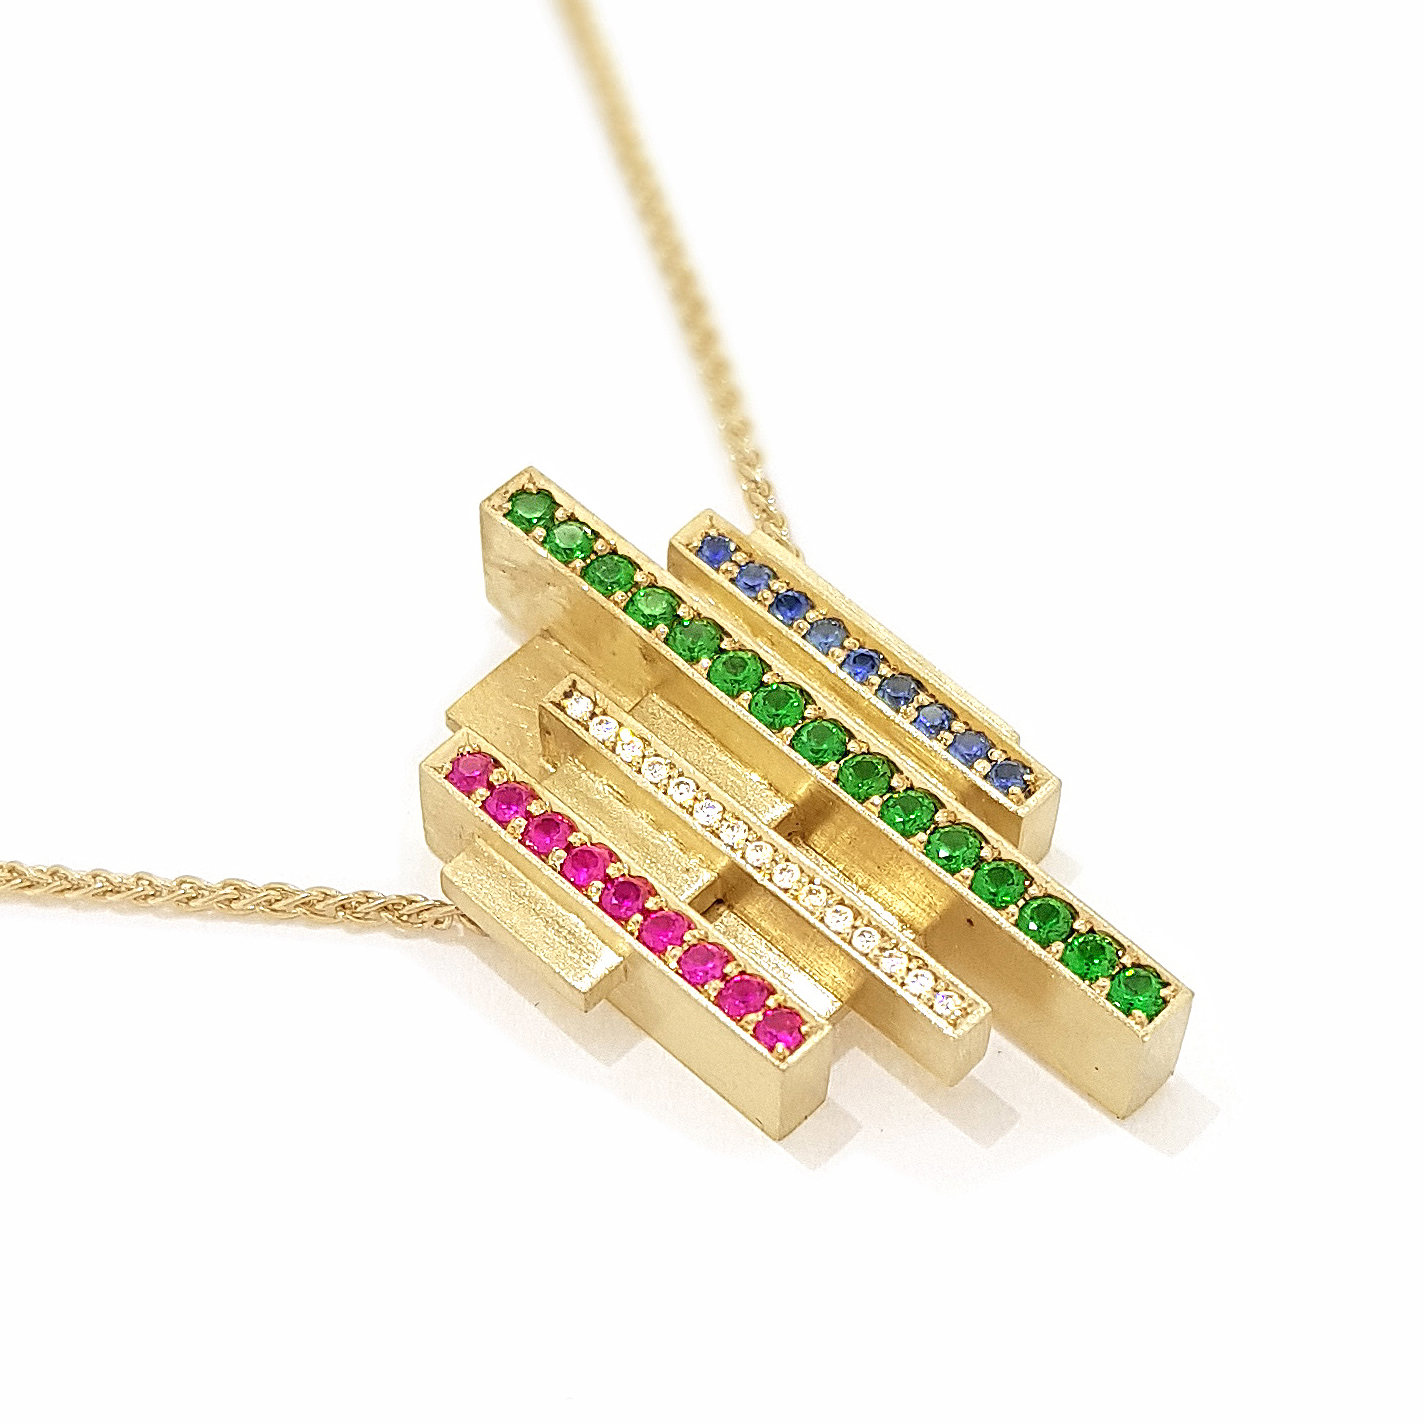 Yellow gold pendant on a spiga chain with diamonds, rubies, sapphires, and tsavorites on a white background.